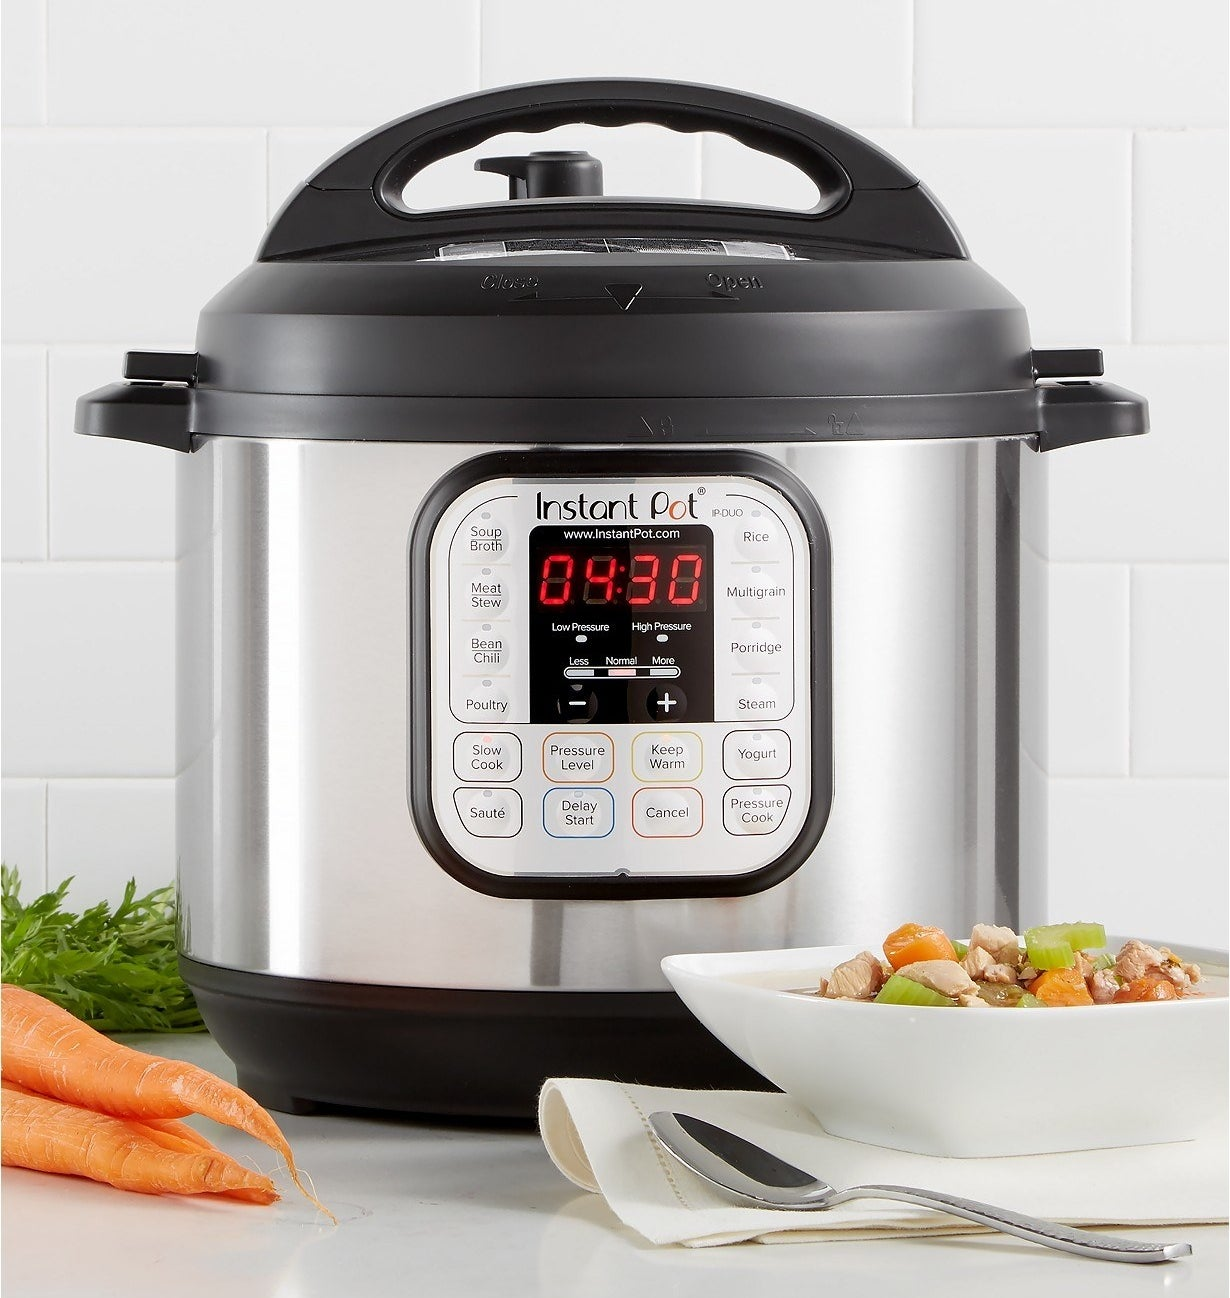 The Instant Pot, featuring a digital display